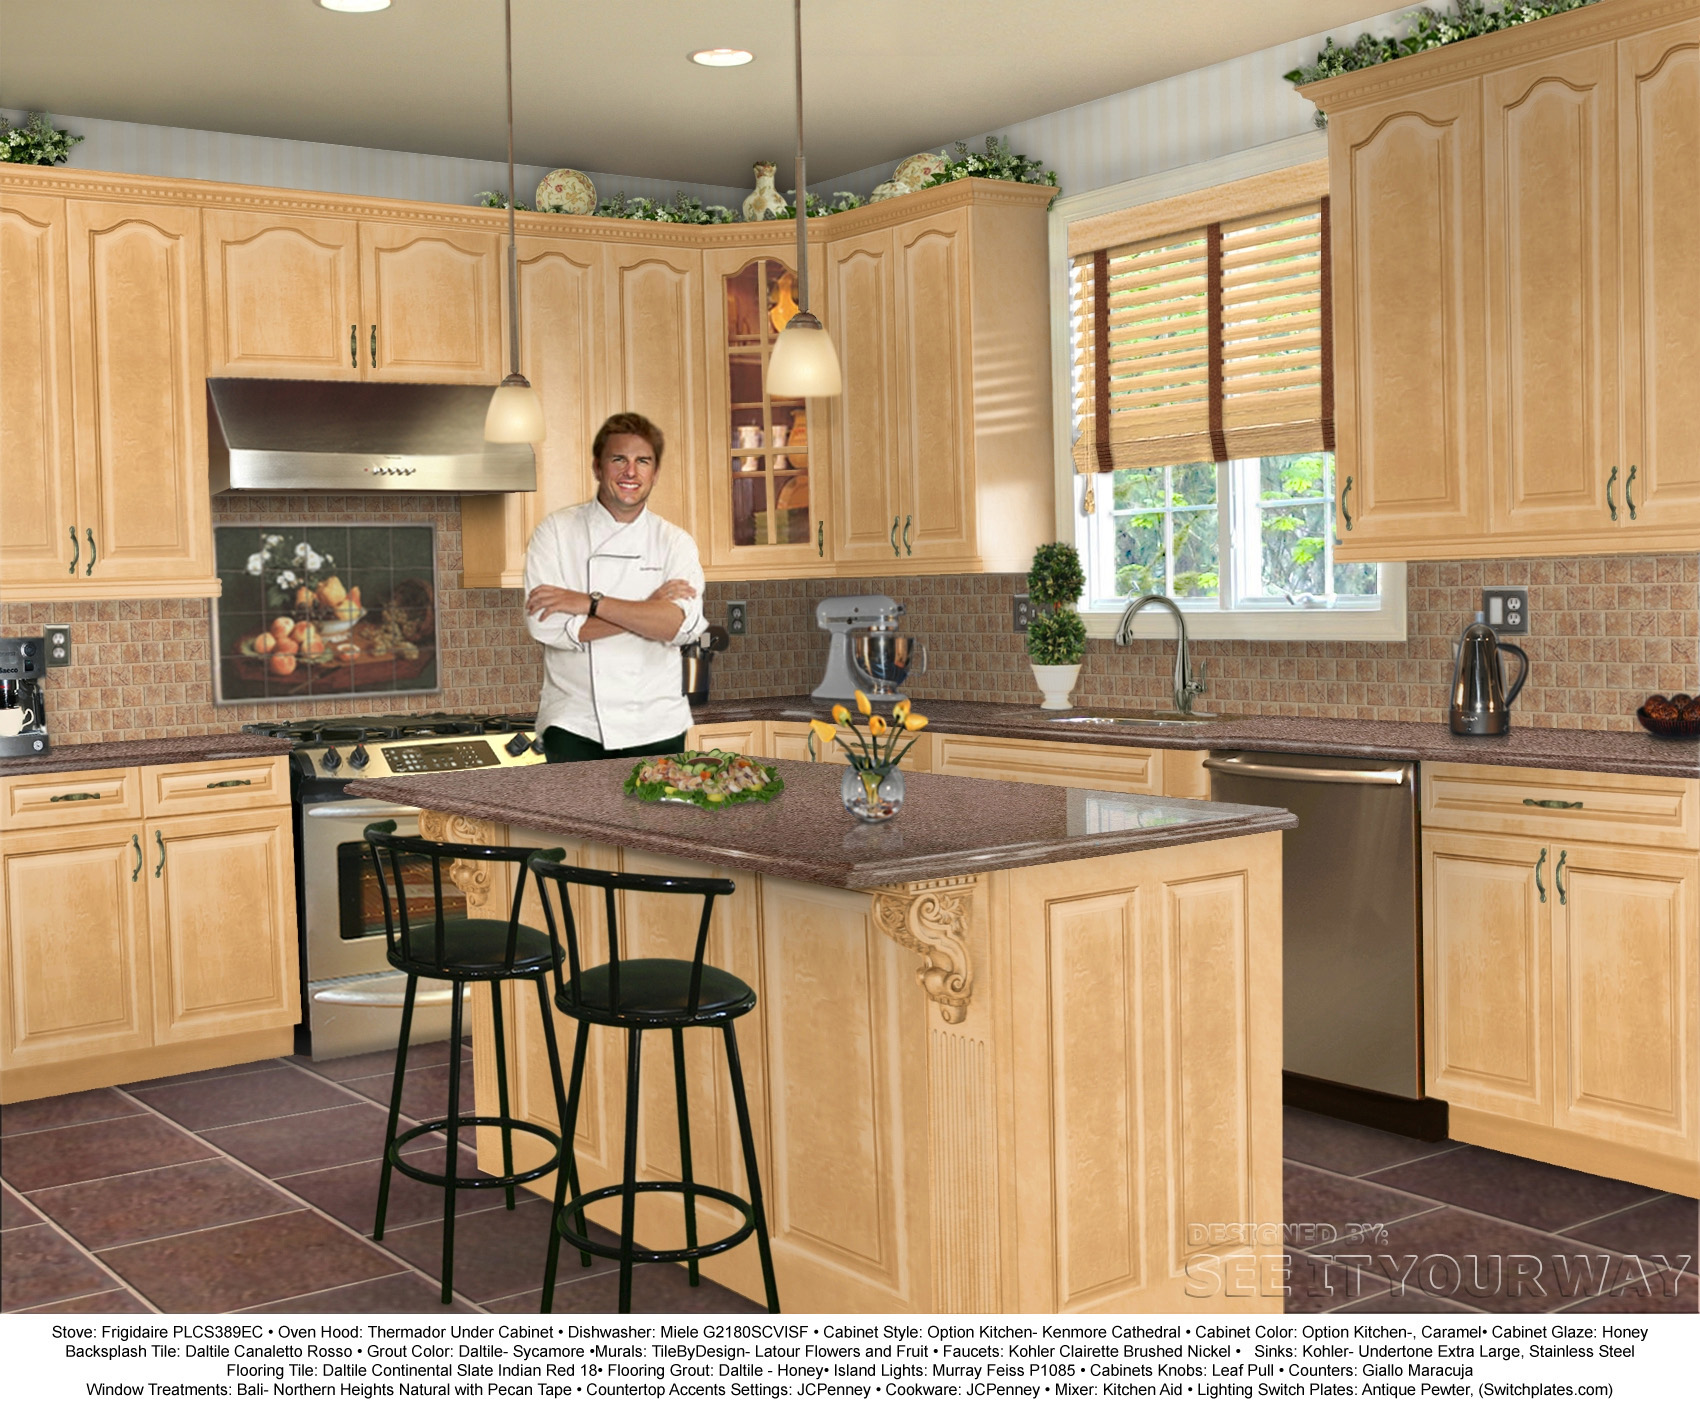 sample of kitchen design seeityourway launches photo quality home design 5057